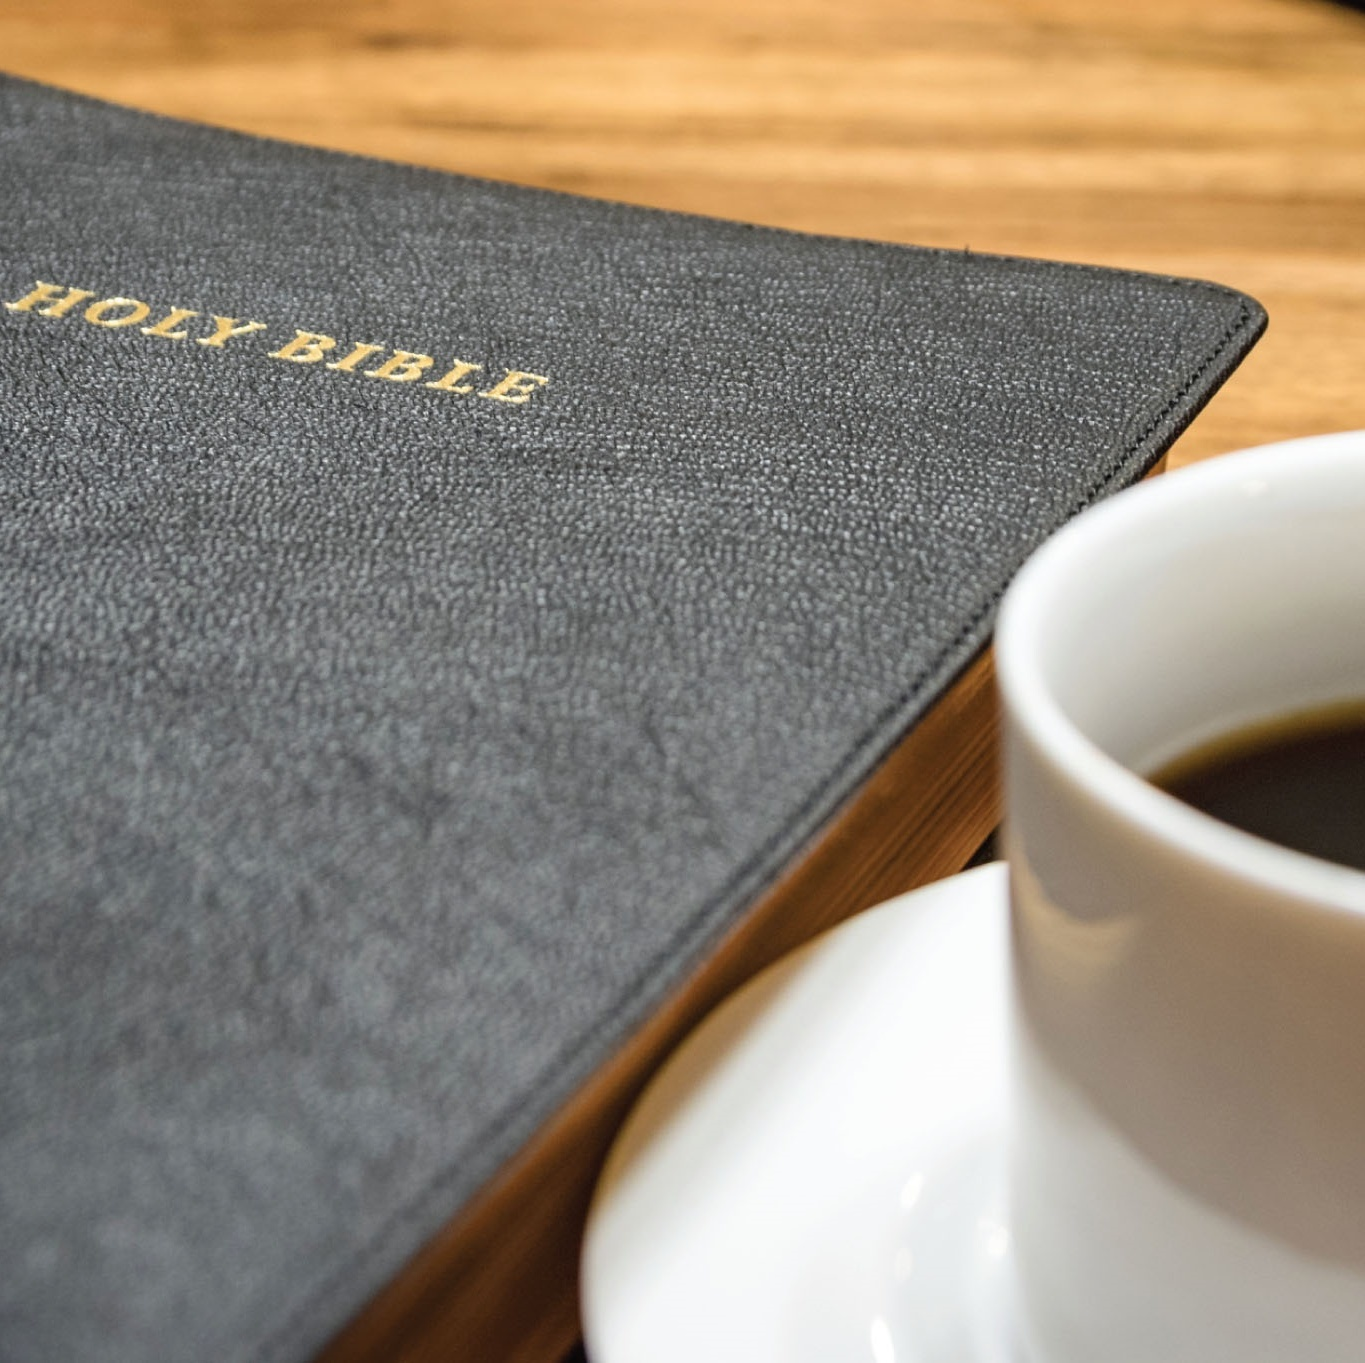 A cup of coffee next to the Bible.